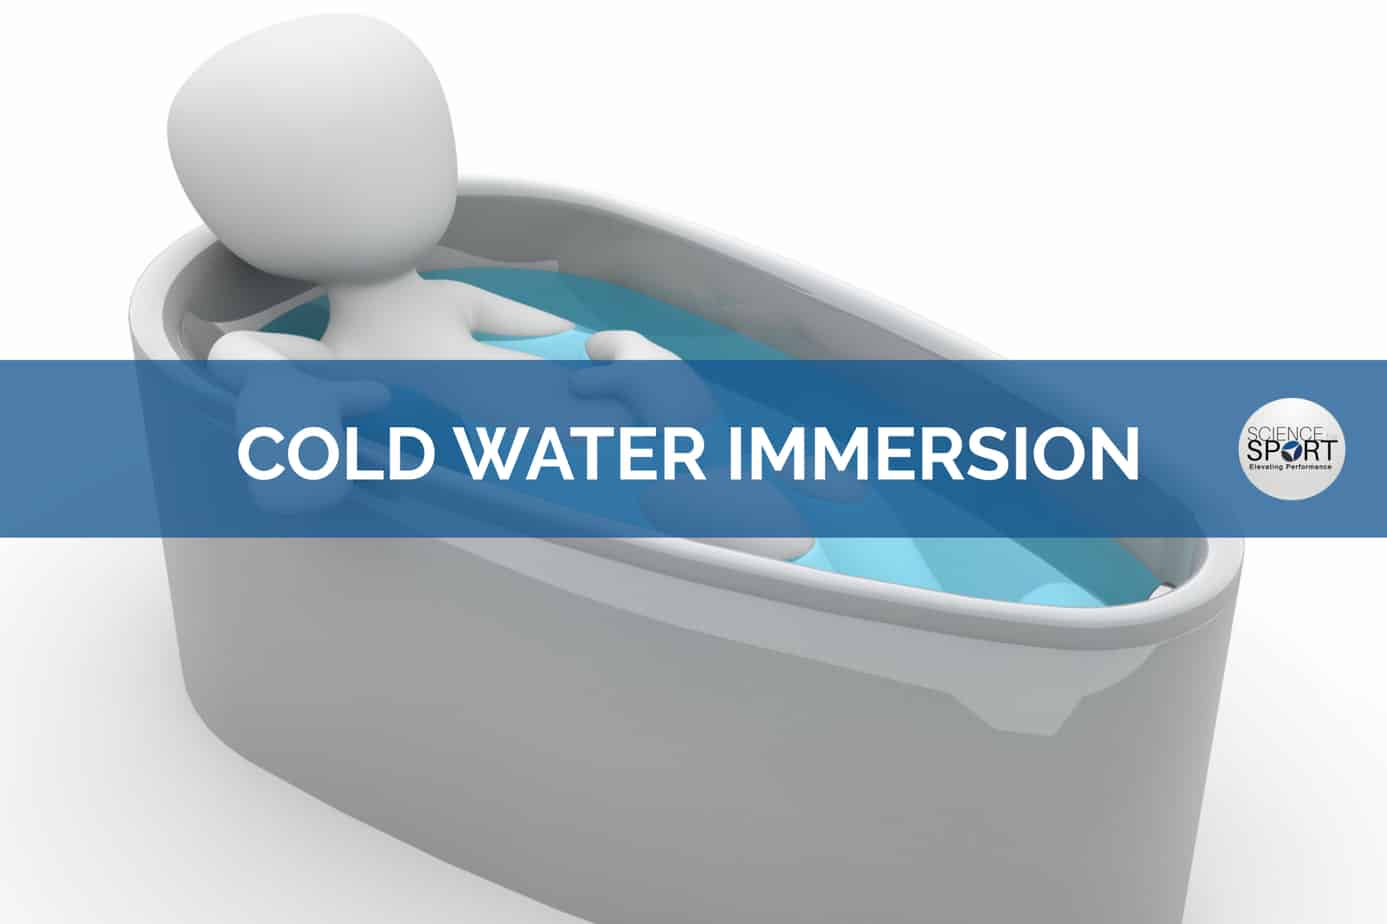 Cold water immersion- science for sport